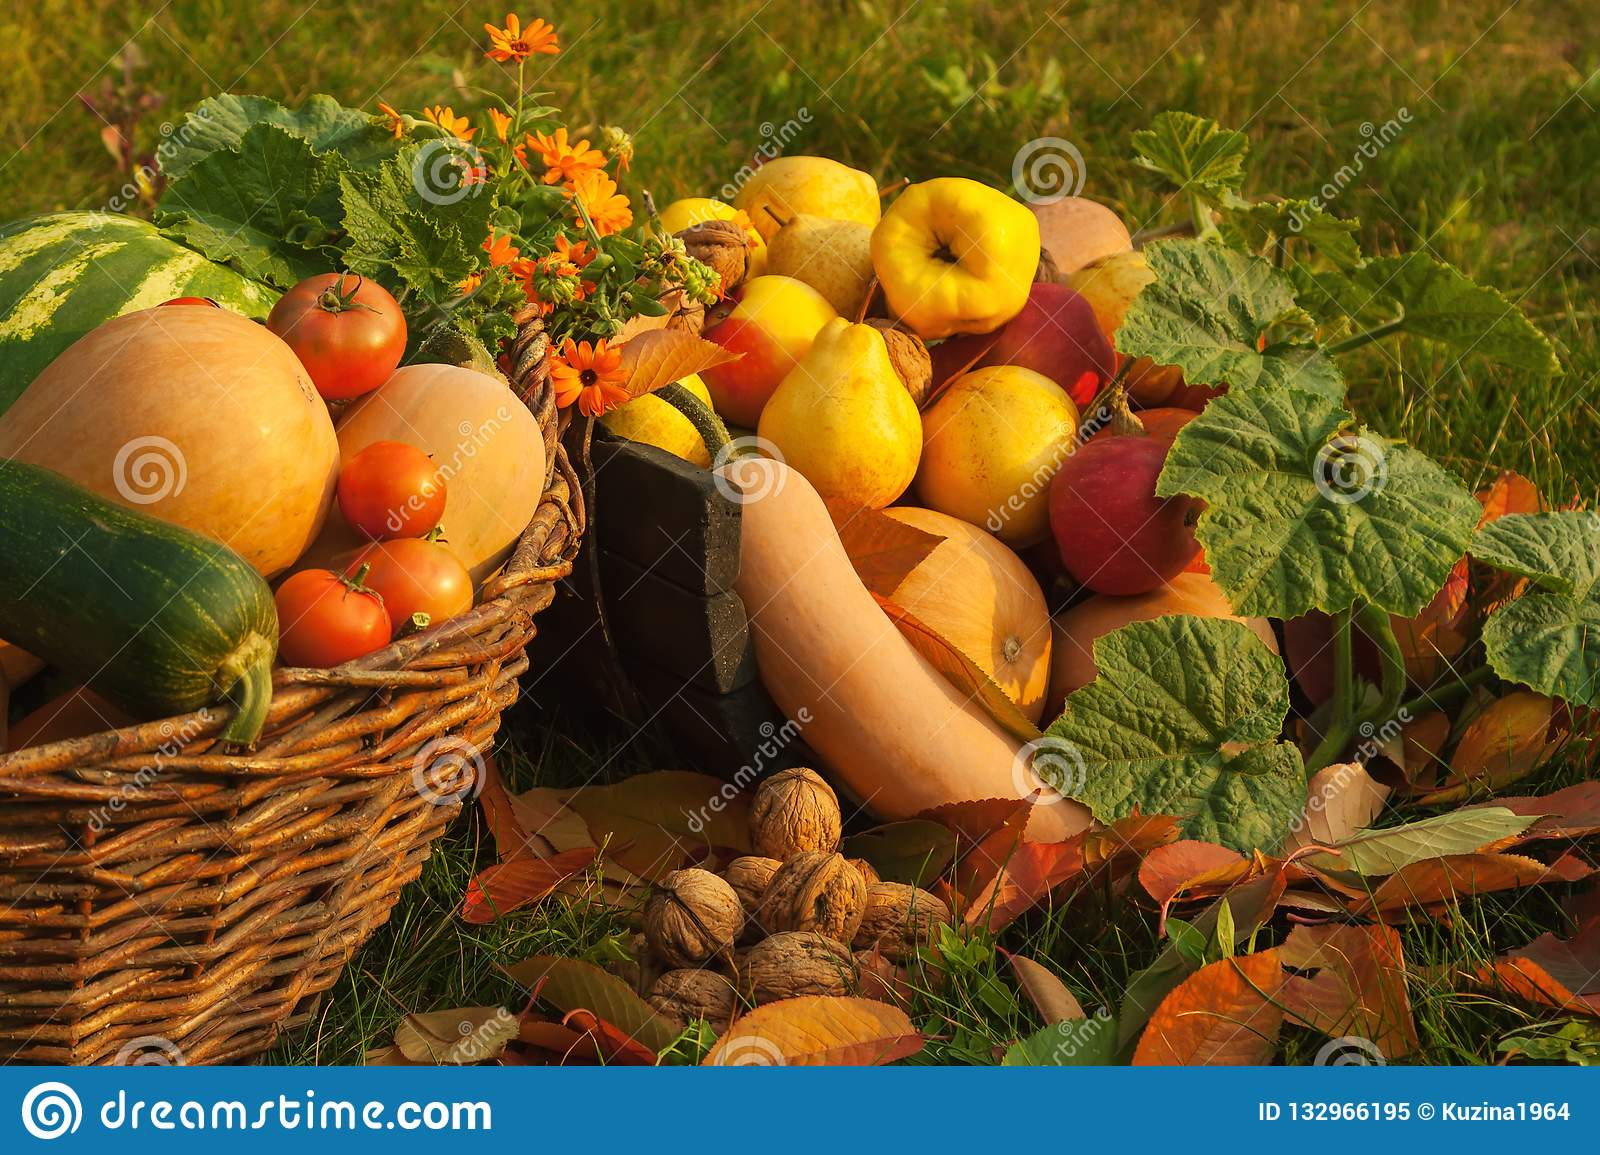 Harvest In The Autumn Garden Stock Image Image Of Agriculture